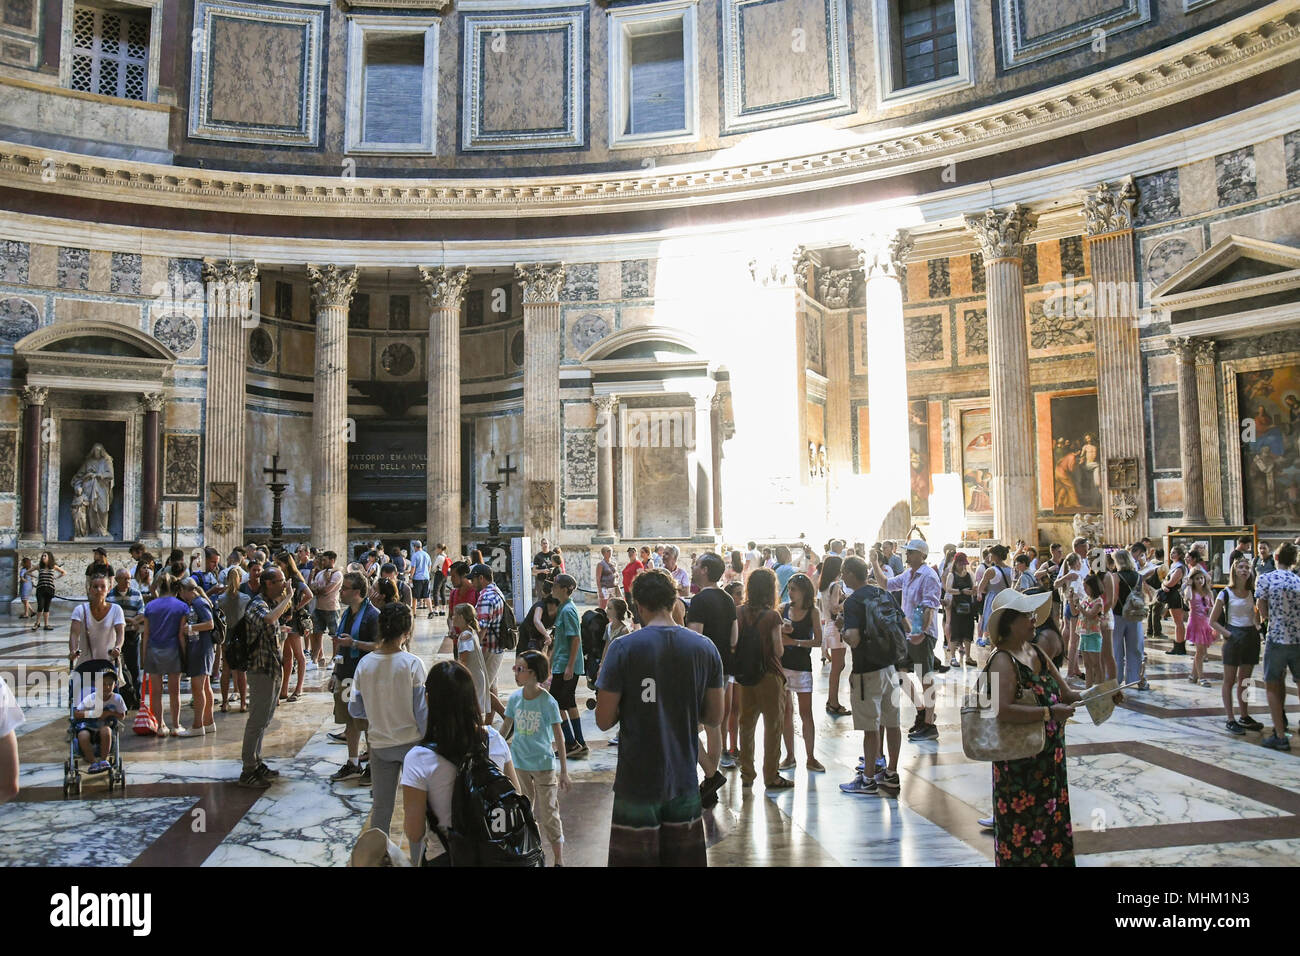 Tourists Inside the pantheon in Rome a former roman temple now a church - Stock Image